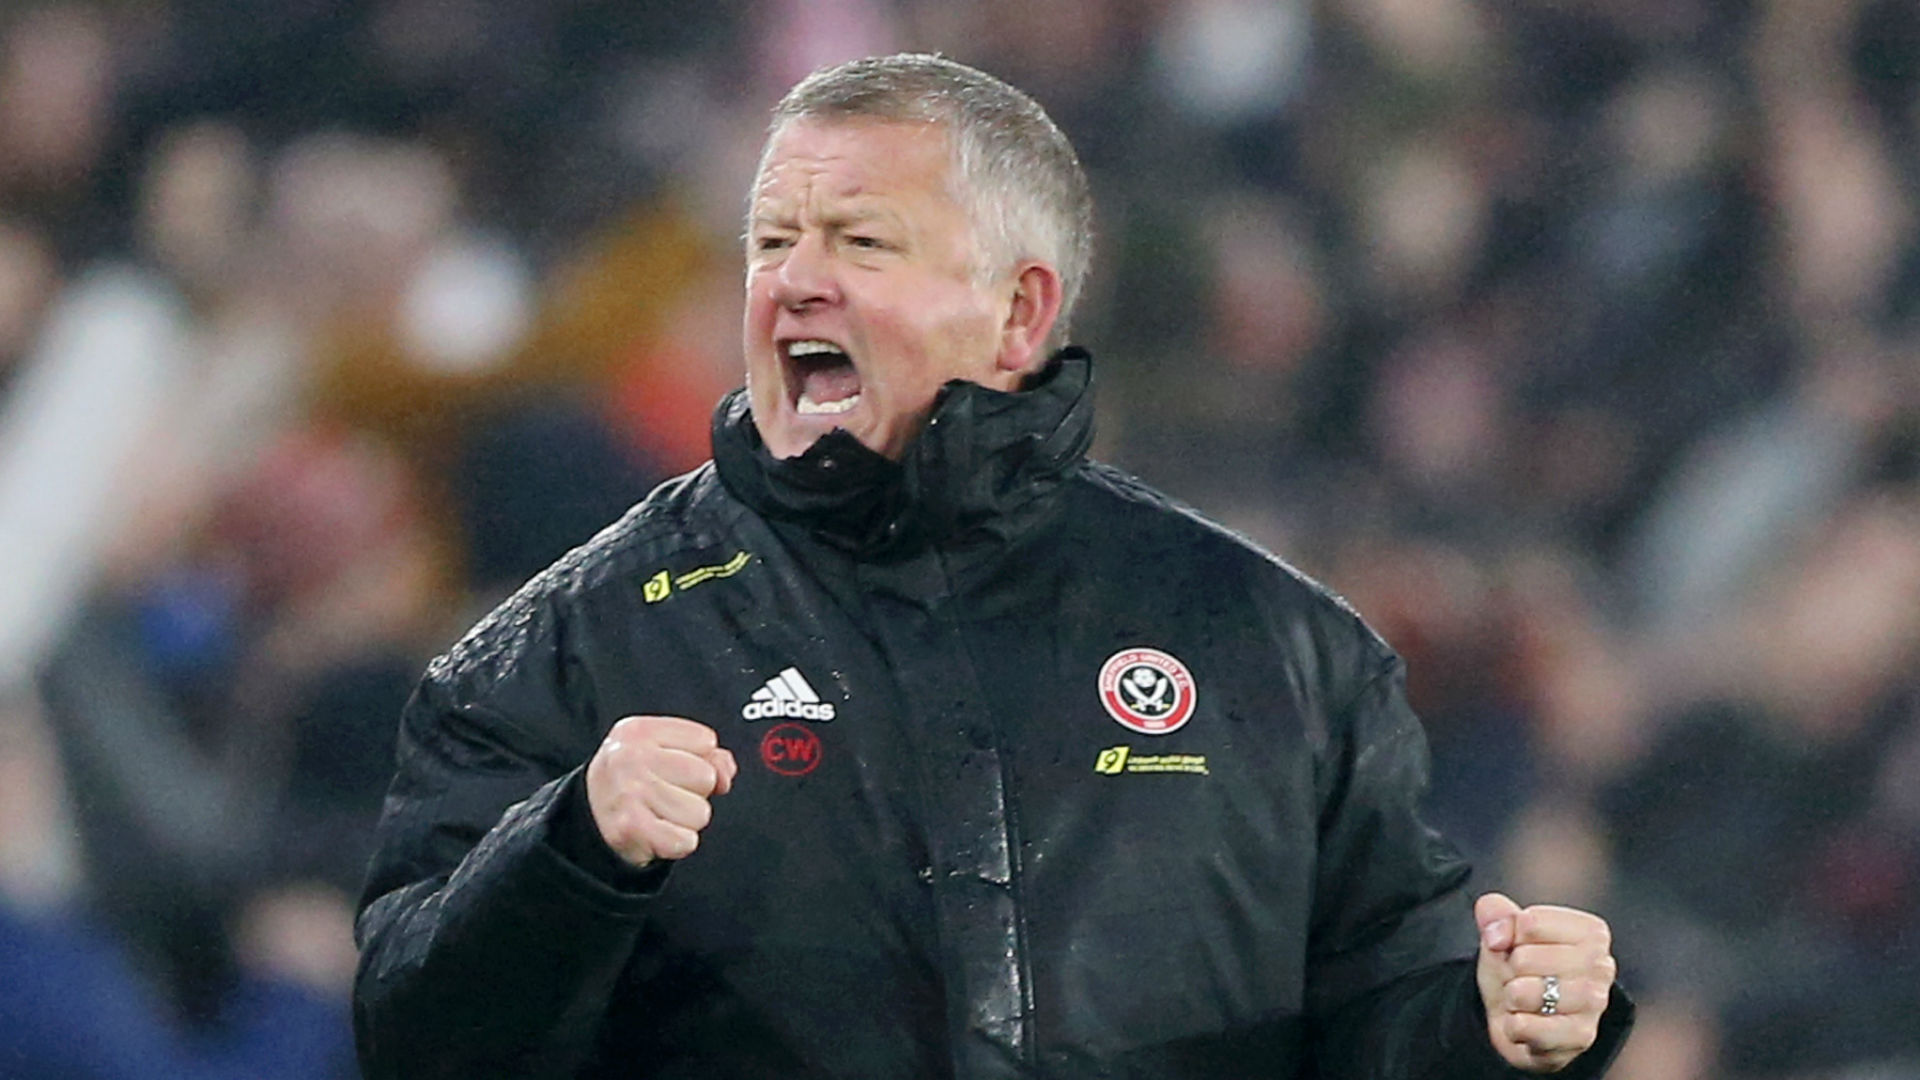 Sheffield United will not be distracted by talks of securing a top-four finish with their attention focused solely on Thursday's Premier League clash against Leicester City, manager Chris Wilder said on Tuesday. Sheffield are seventh in the standings with 54 points, five behind Leicester, who occupy the final Champions League spot with three games to […]